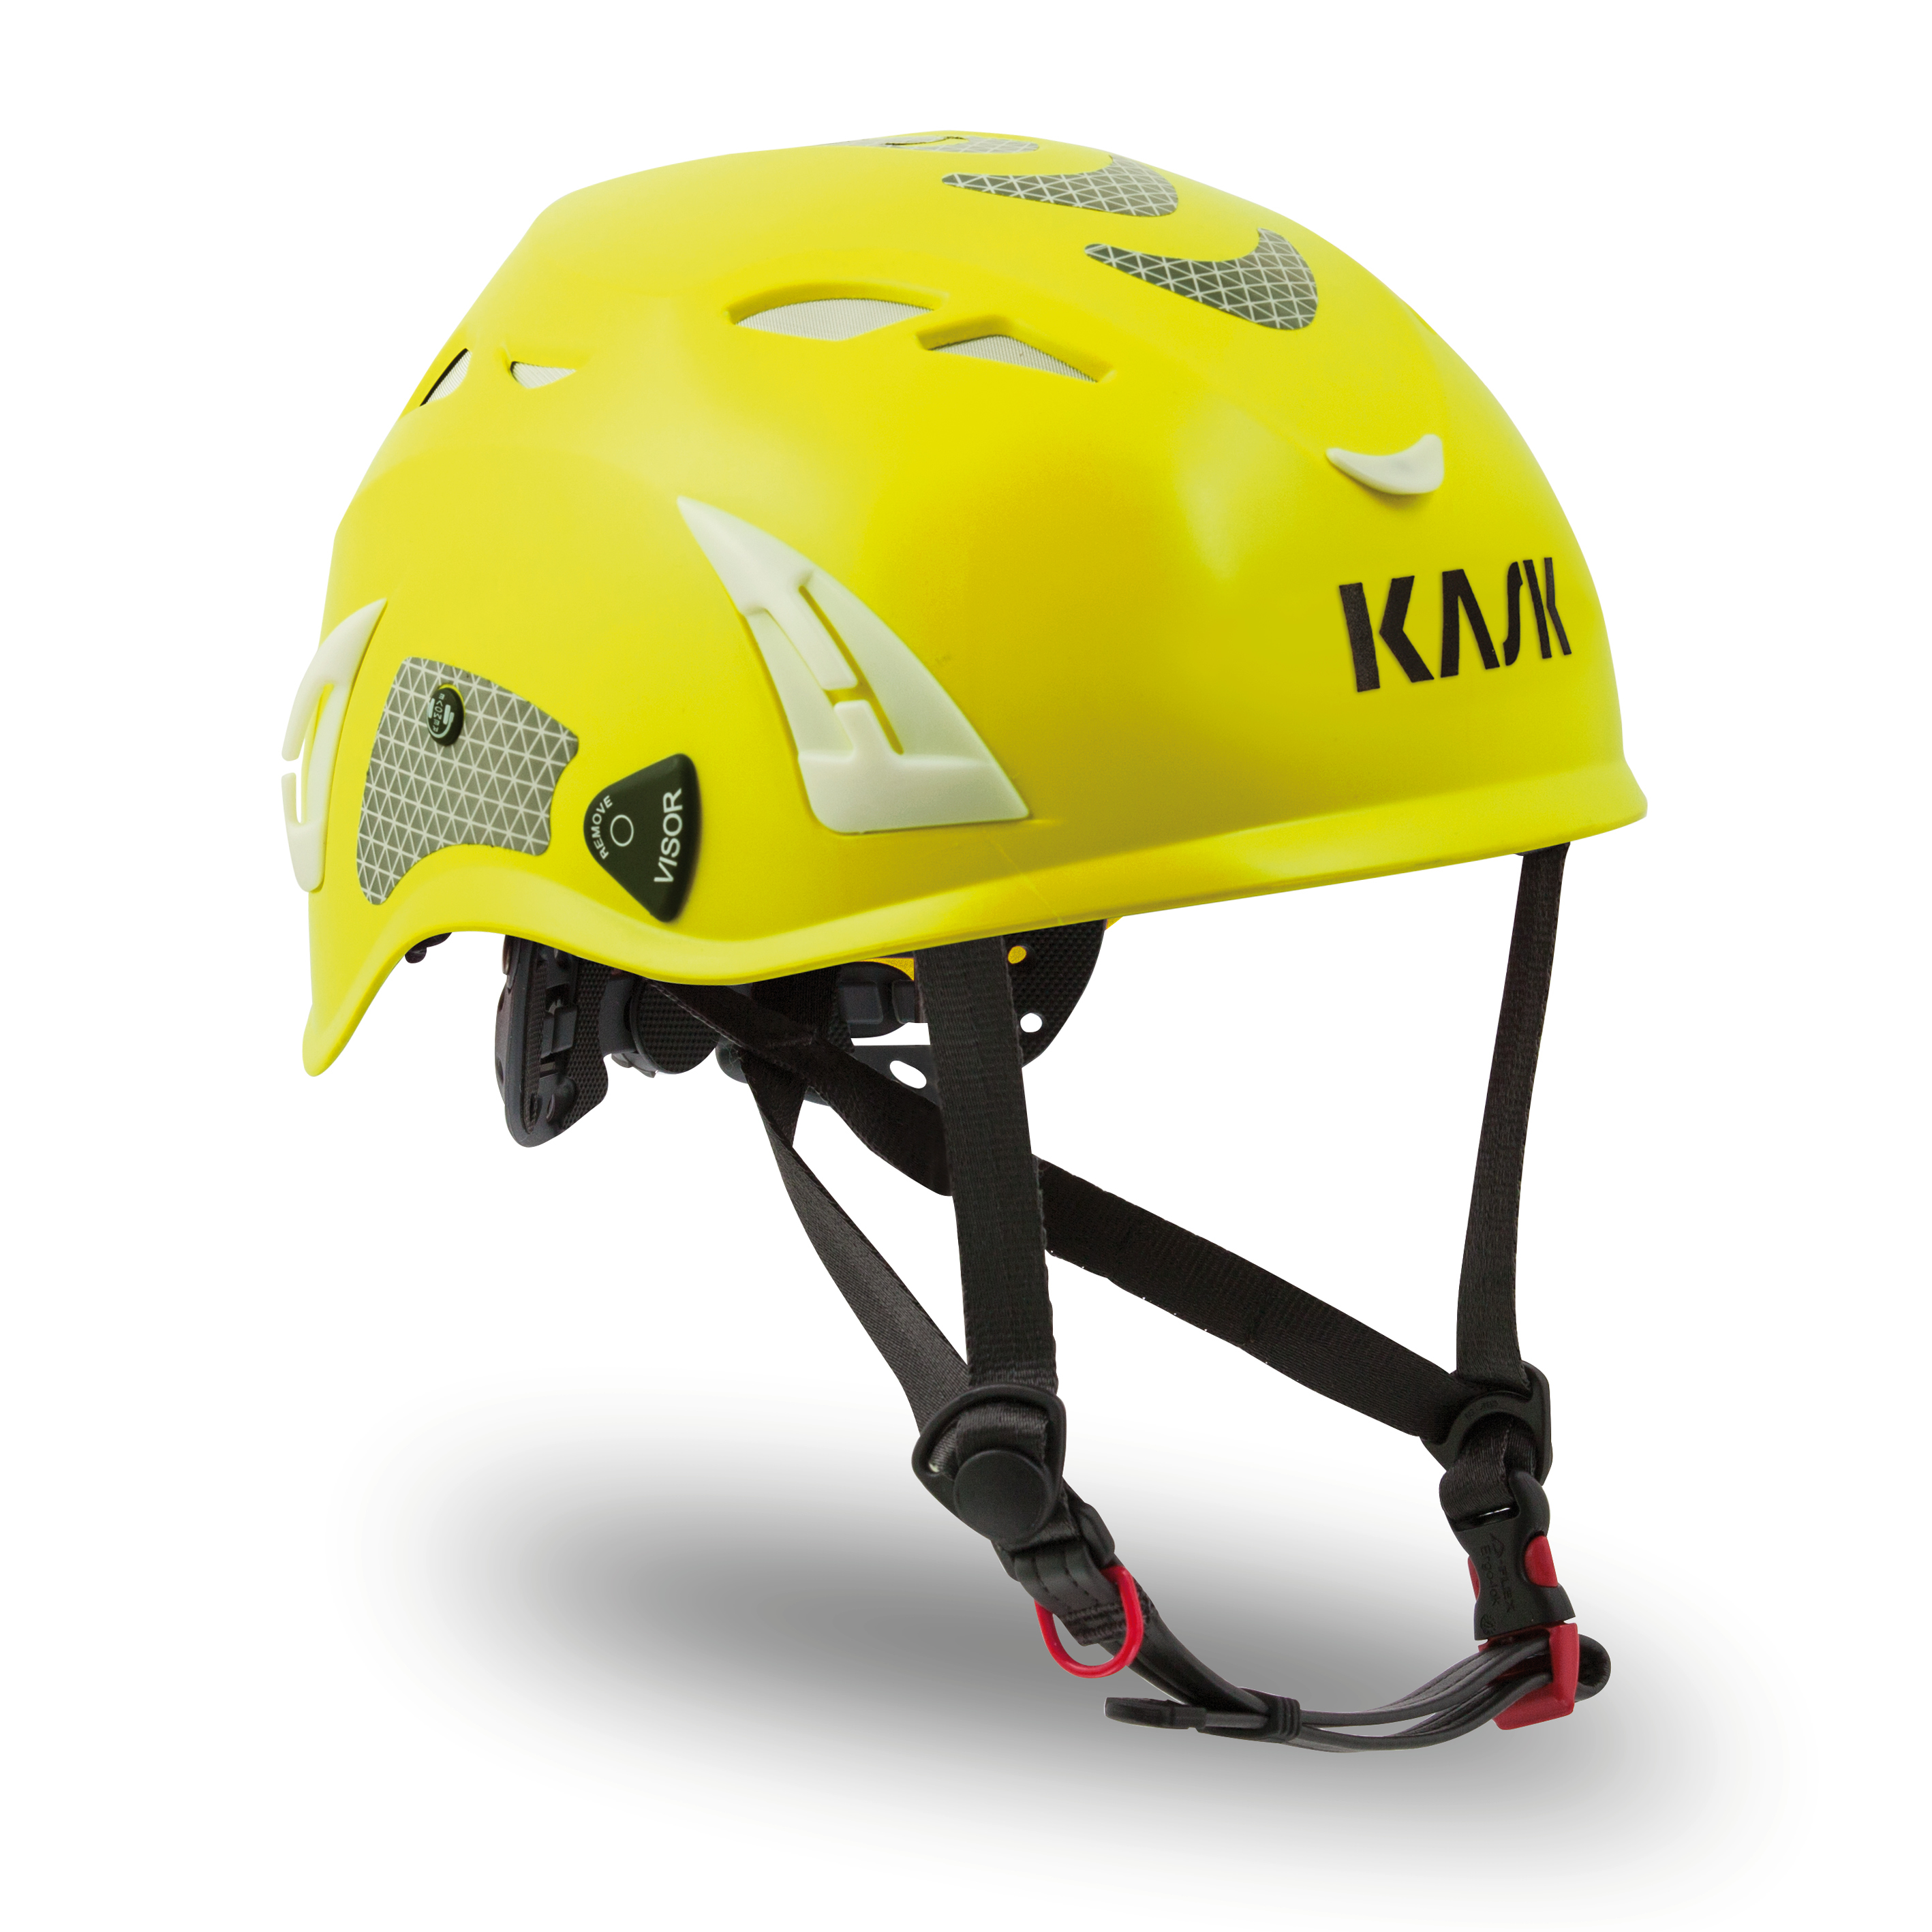 Kask Superplasma HI VIZ Helmet — Yellow Fluorescent KA-WHE00011.221